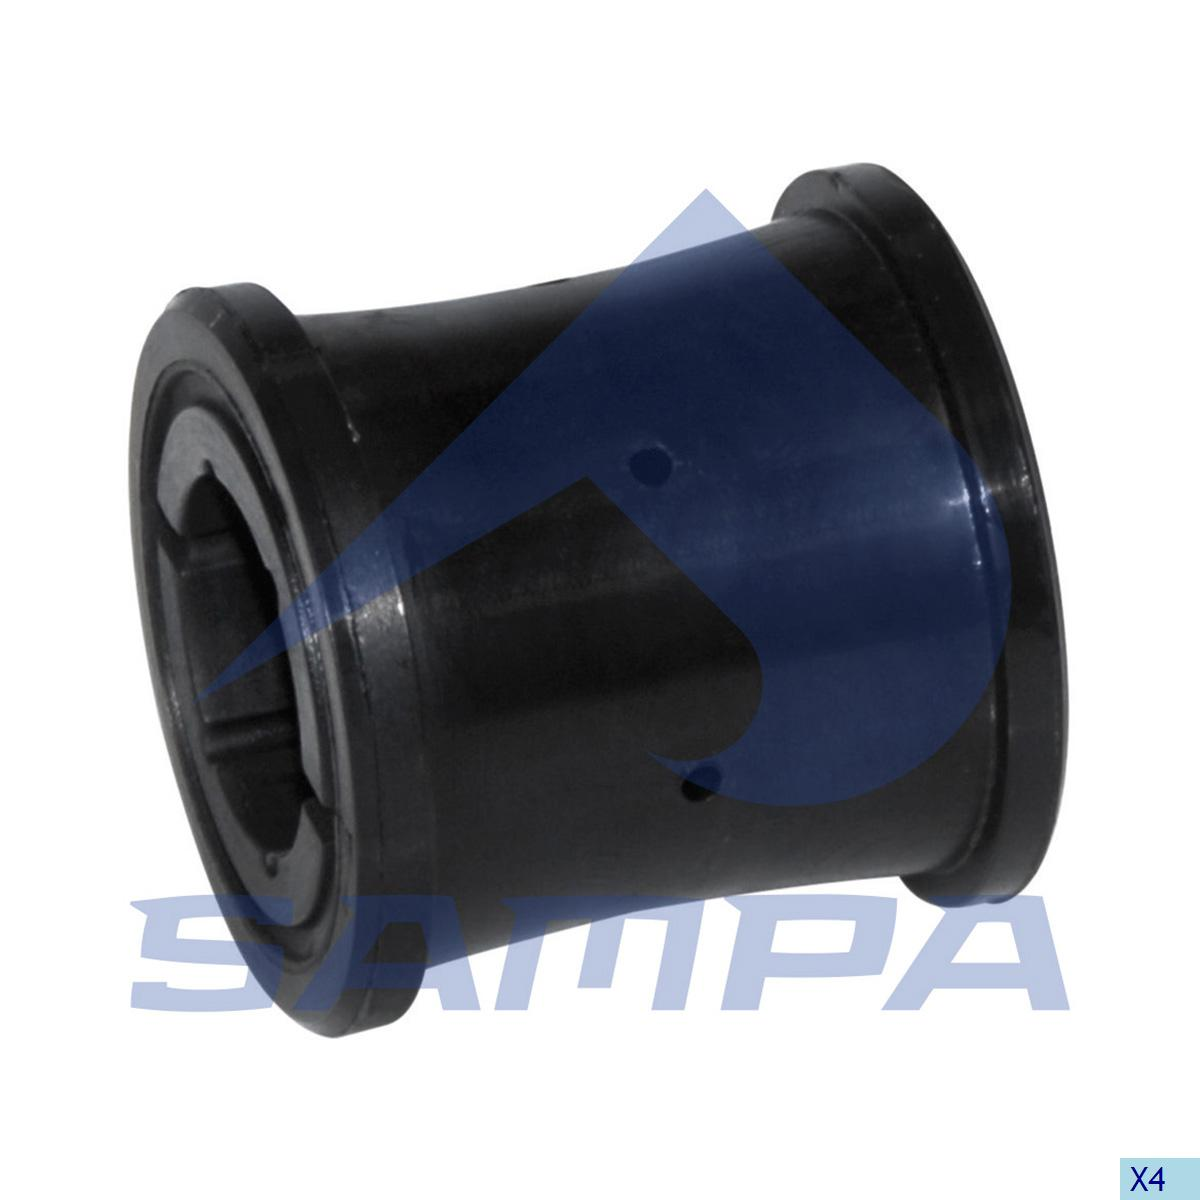 Bearing, Stabilizer Bar, R.V.I., Suspension